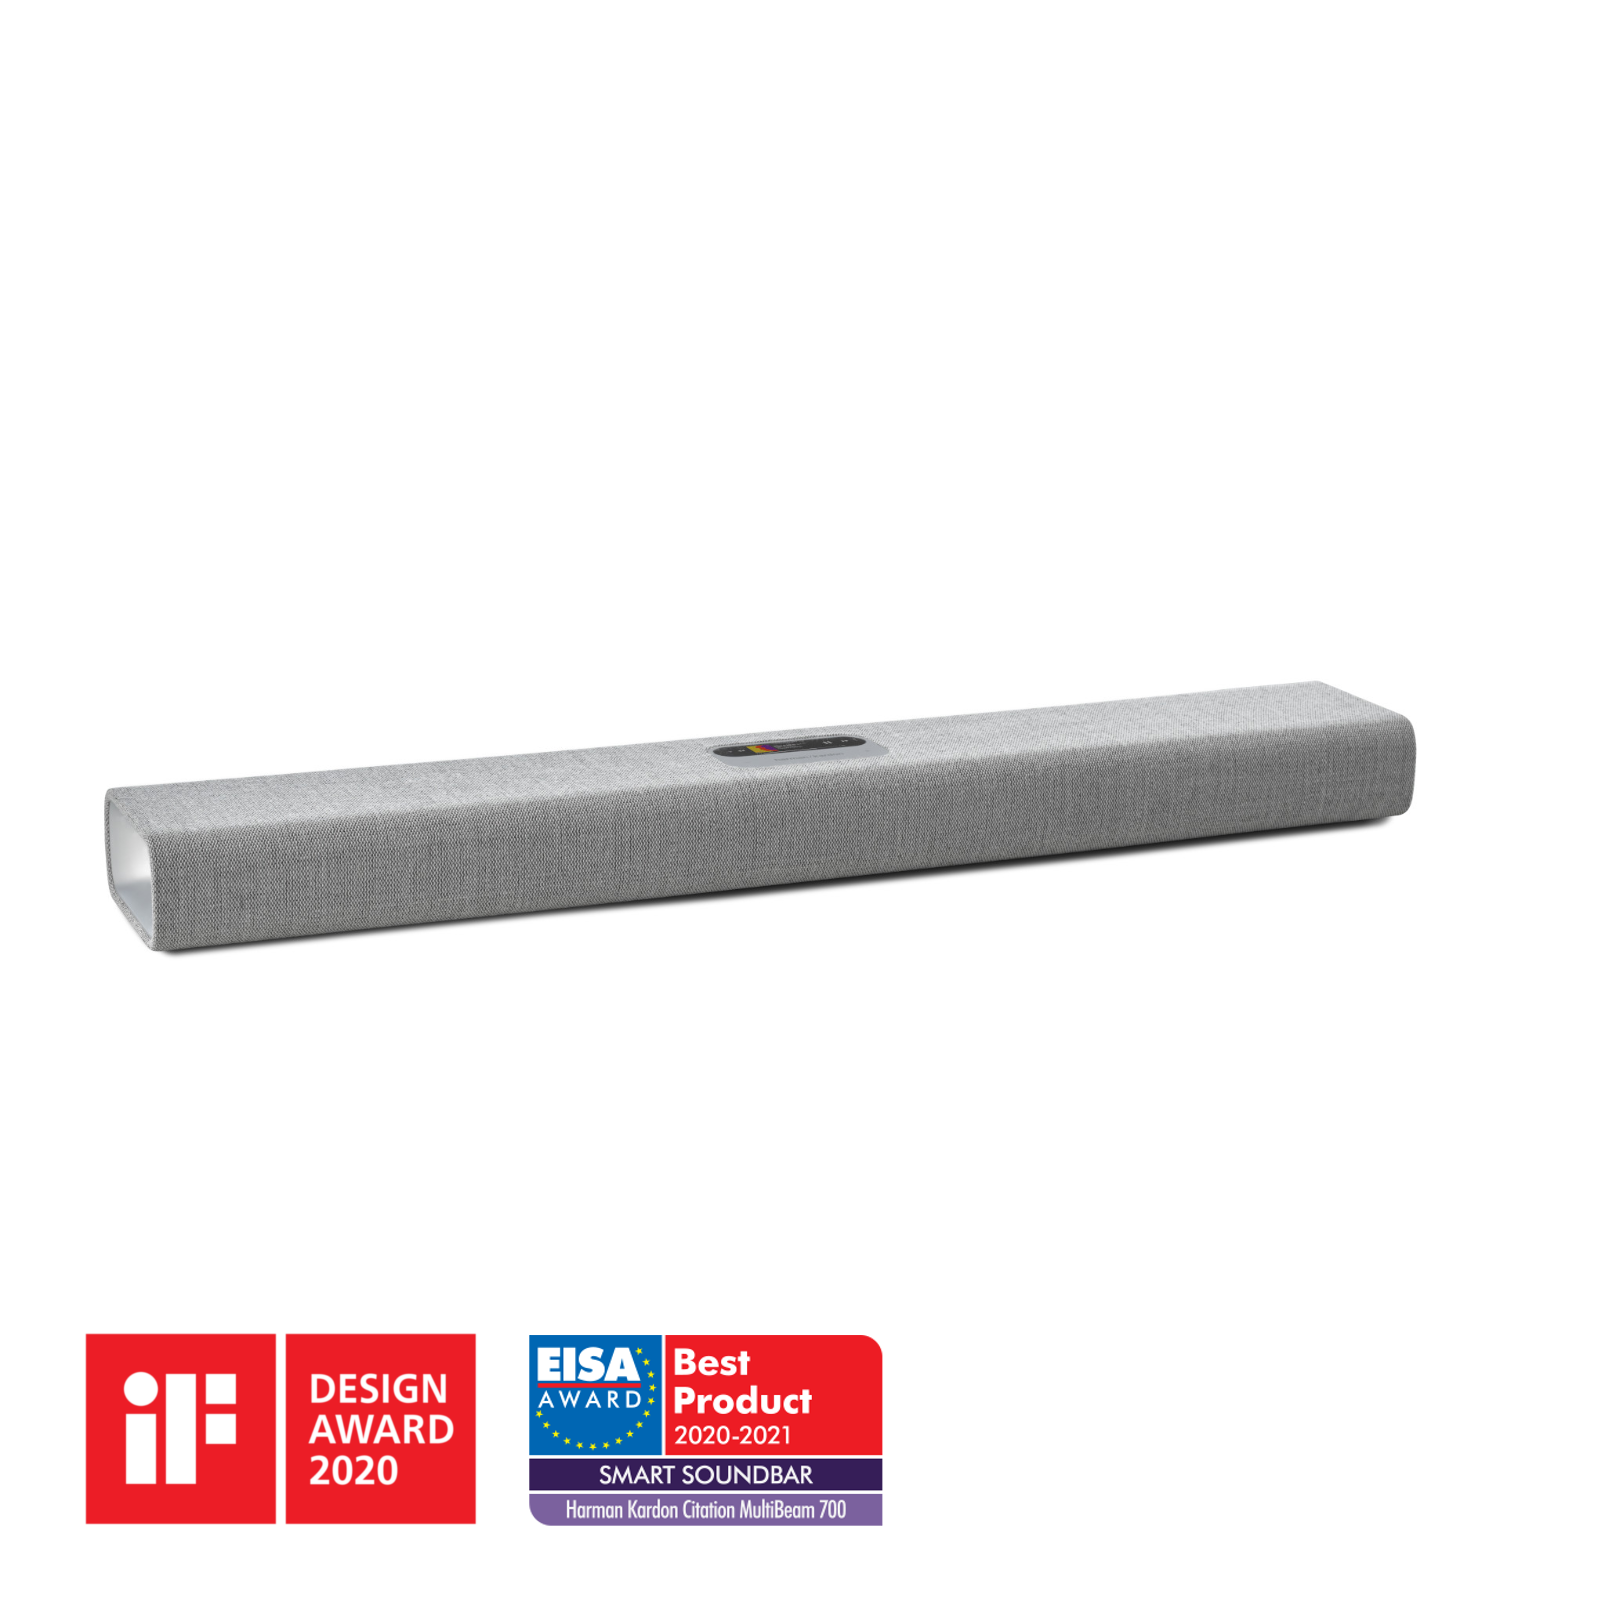 Harman Kardon Citation MultiBeam™ 700 - Grey - The smartest, compact soundbar with MultiBeam™ surround sound - Hero